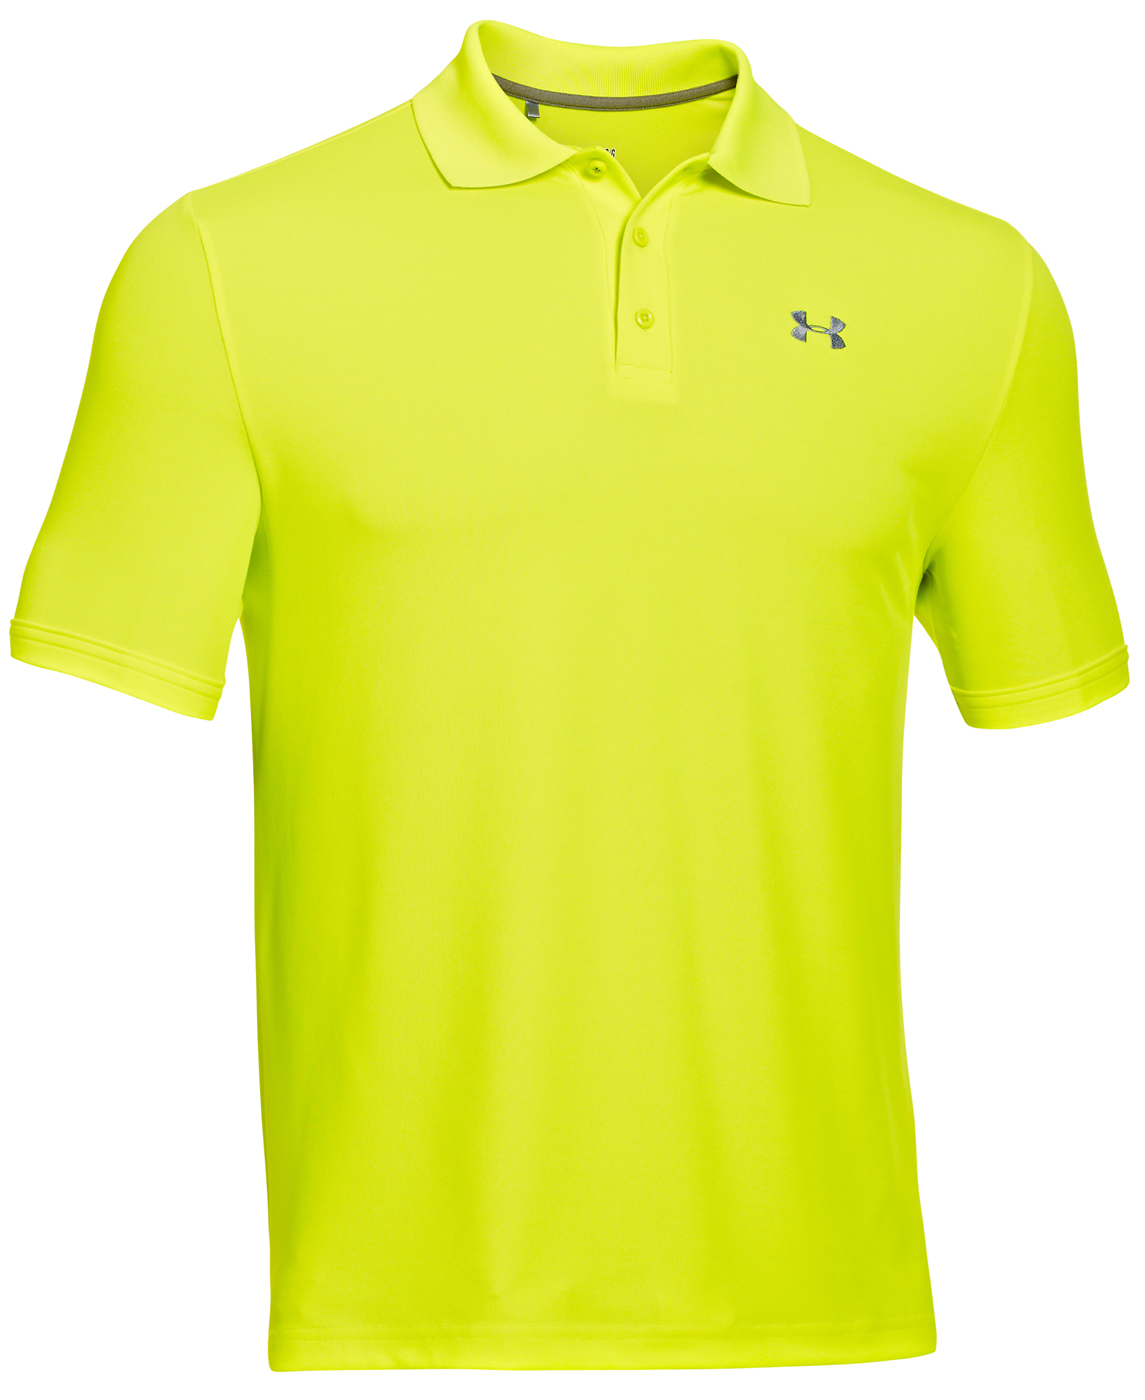 under armour performance men 39 s custom polo 2 0 shirt